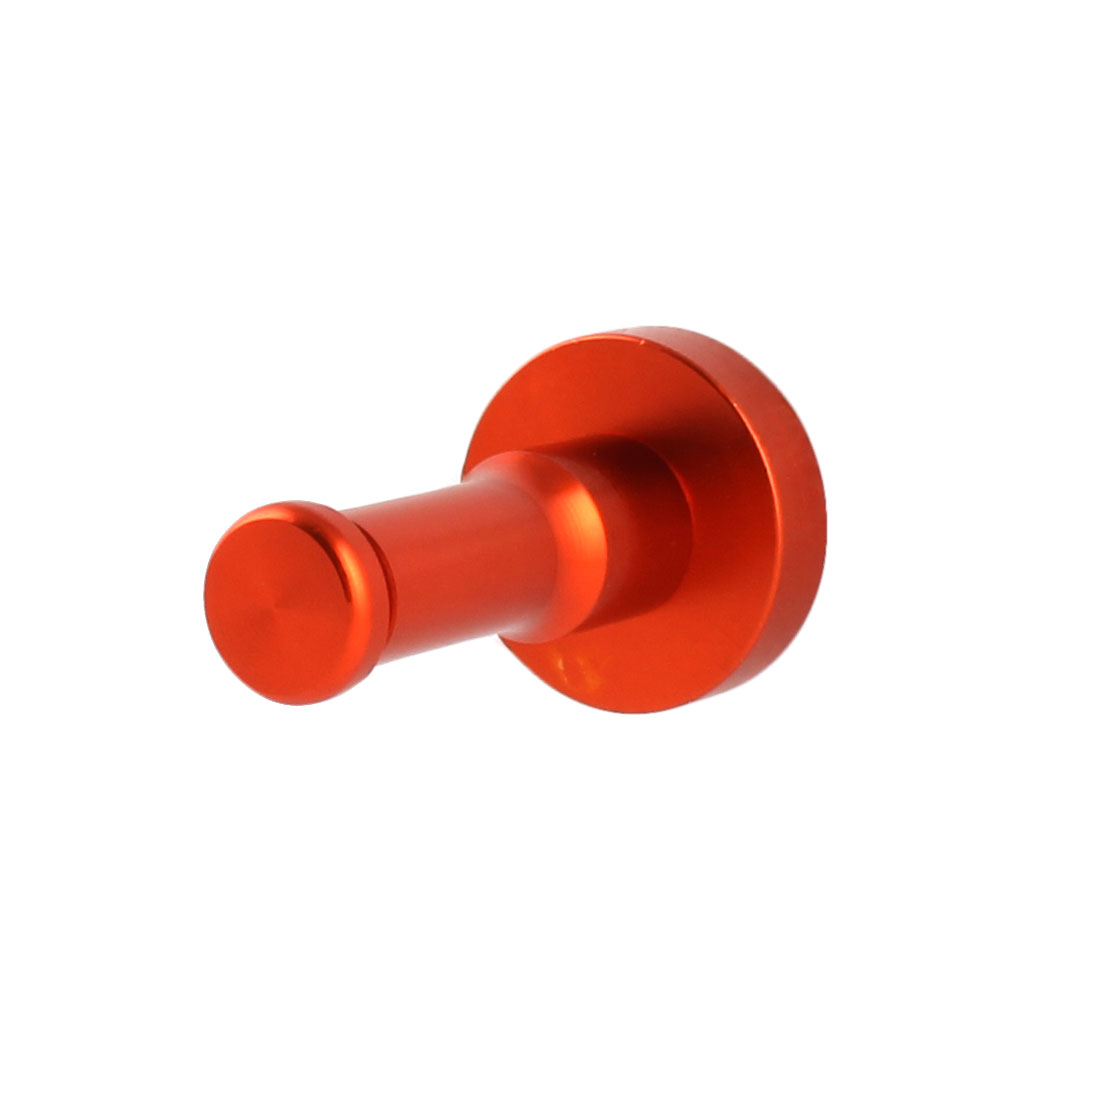 Home Bathroom Metal Wall Mount Coat Towel Hanging Single Hook Hanger Holder Orange